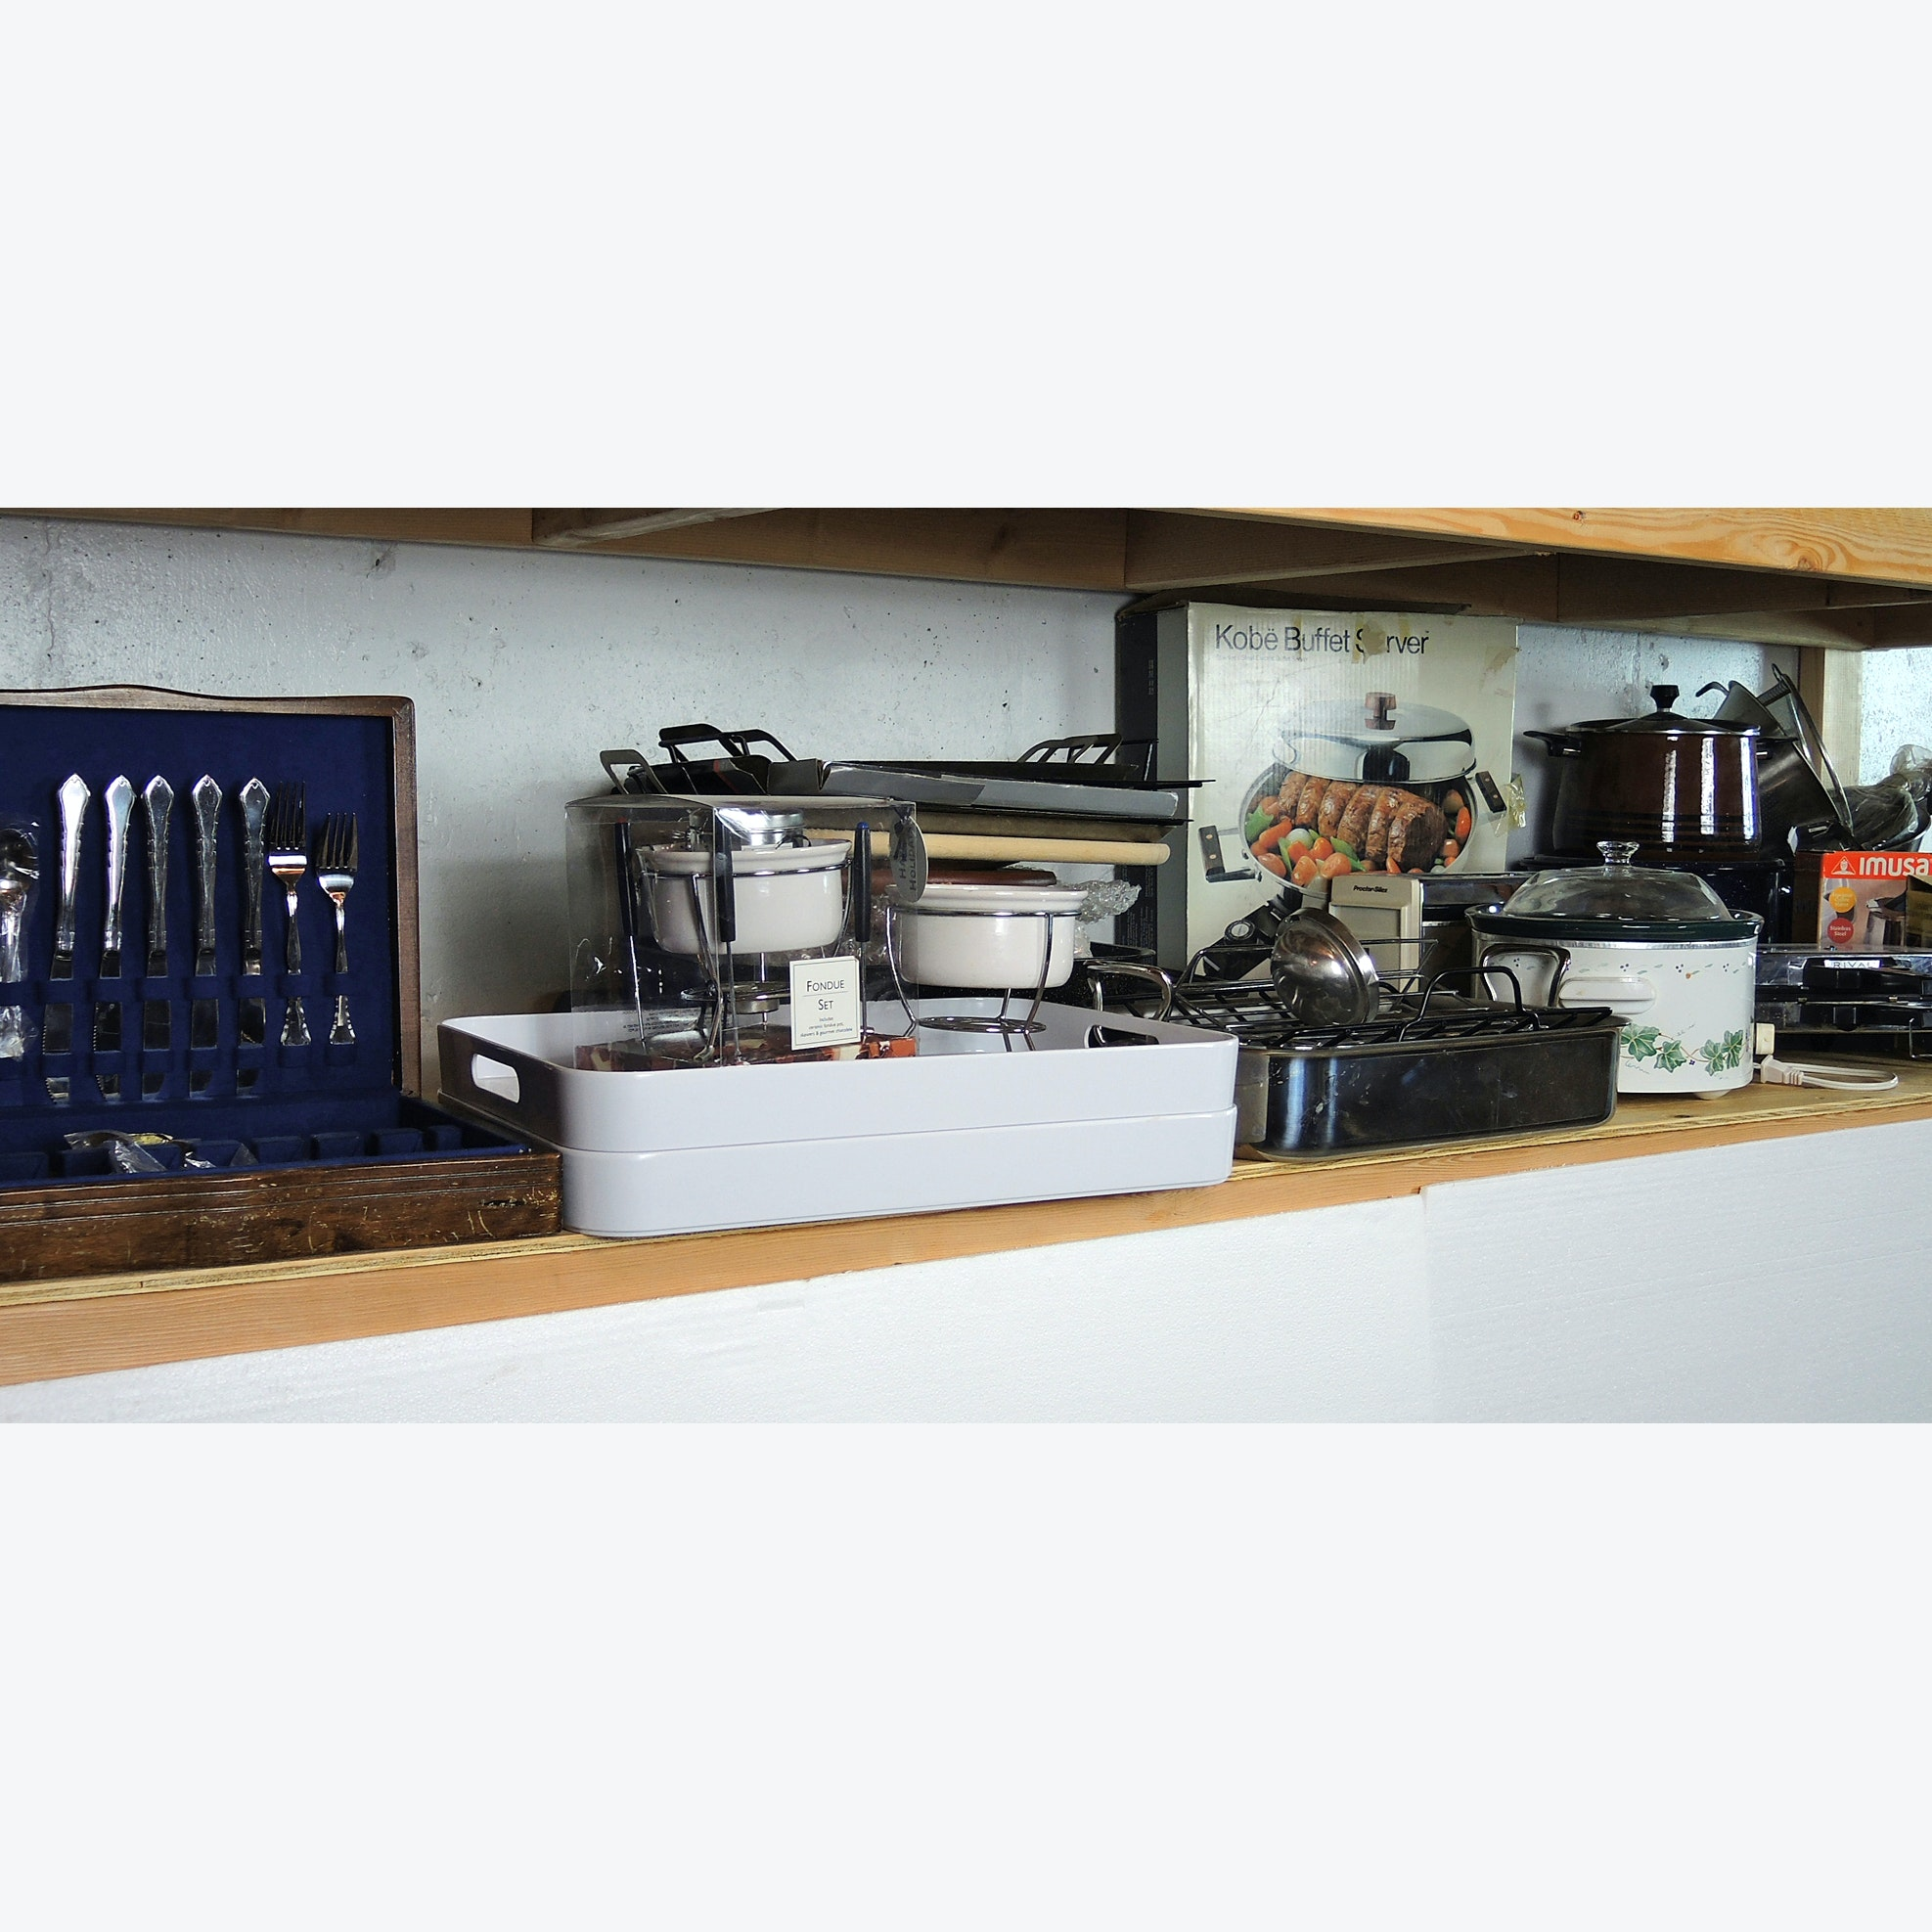 Pots and Pans, Flatware Cooking Collection